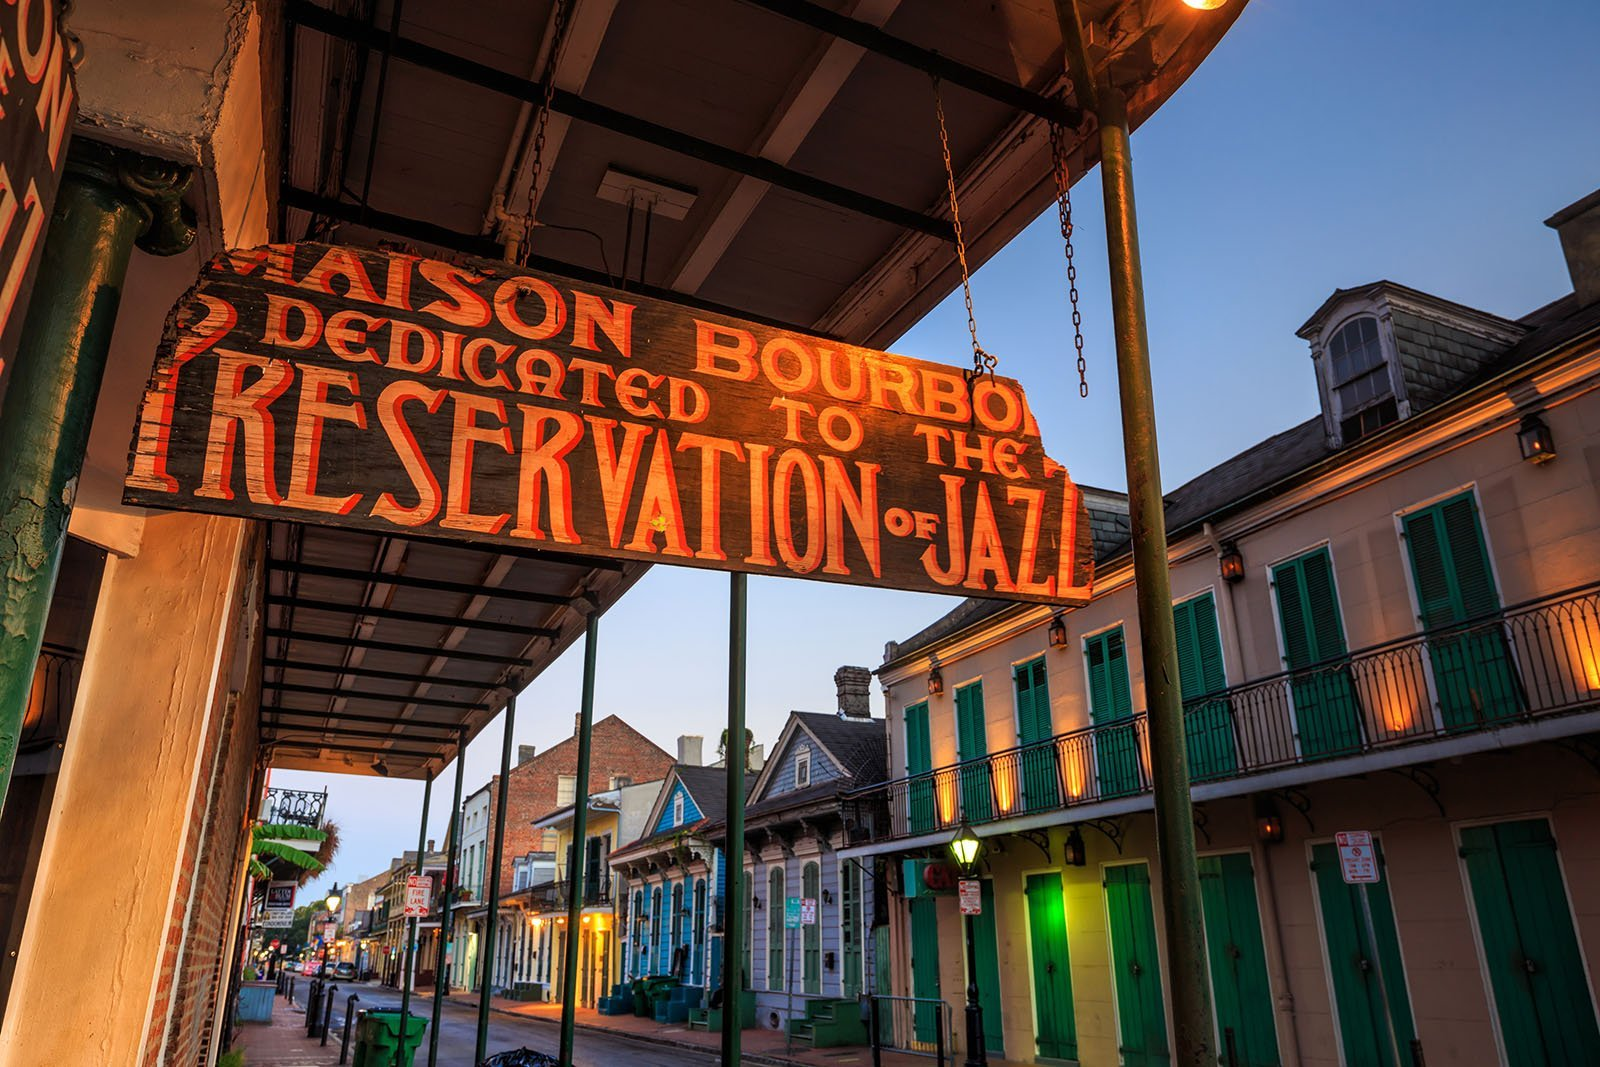 Sign on Bourbon St. in New Orleans for Maison Bourbon